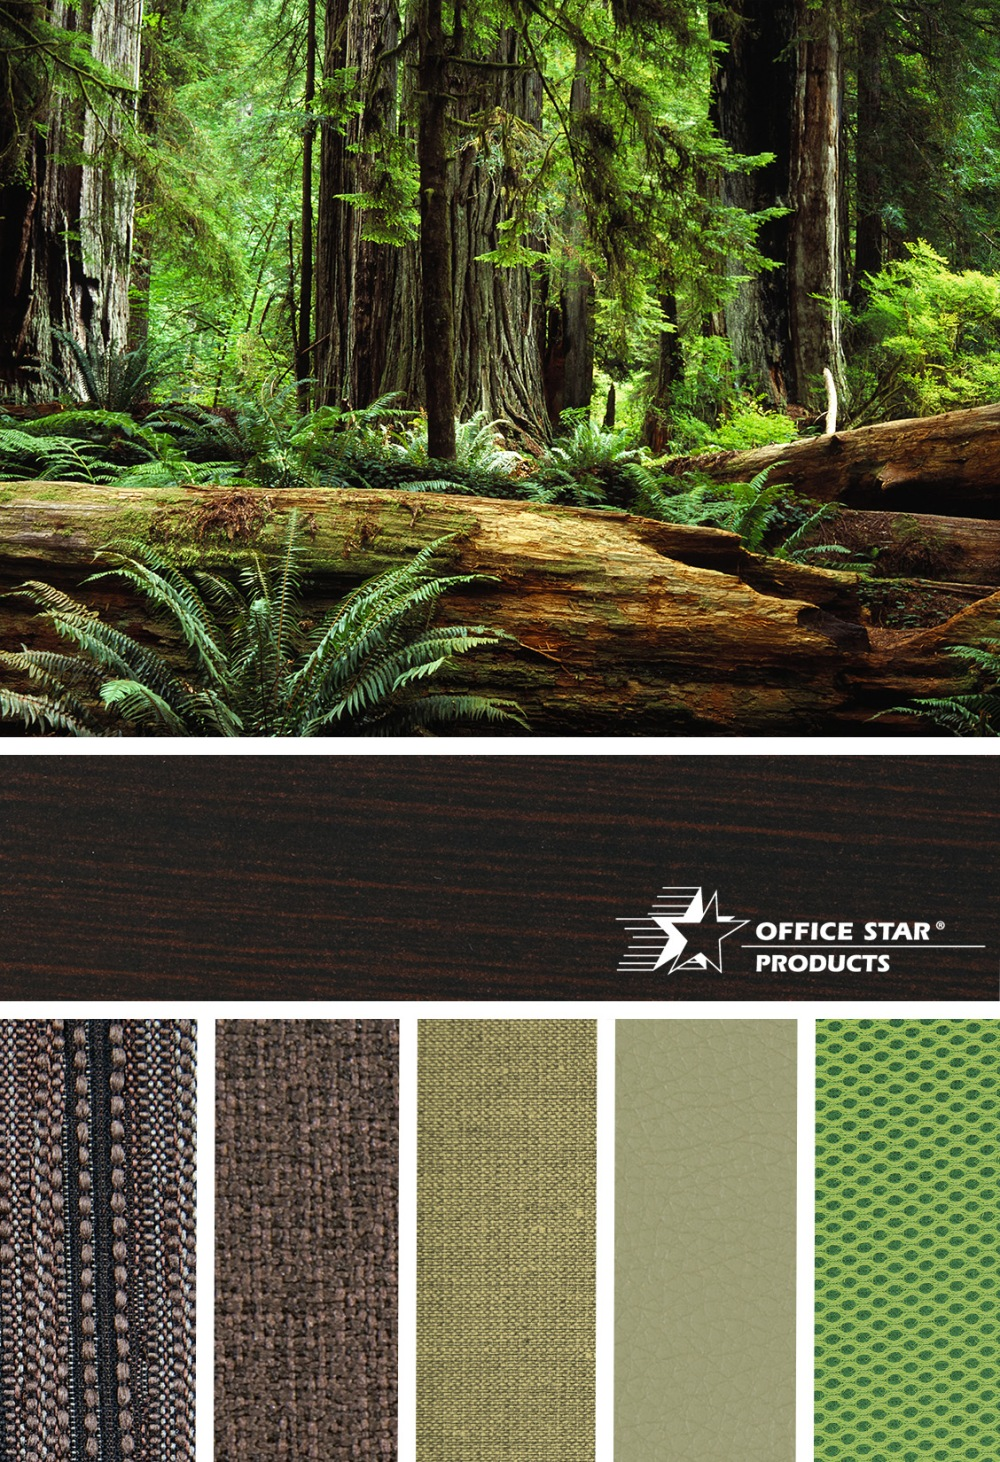 Take inspiration from the California Redwoods with a selection of rich earthy tones from our Custom Fabric Program. @OfficeStarProd